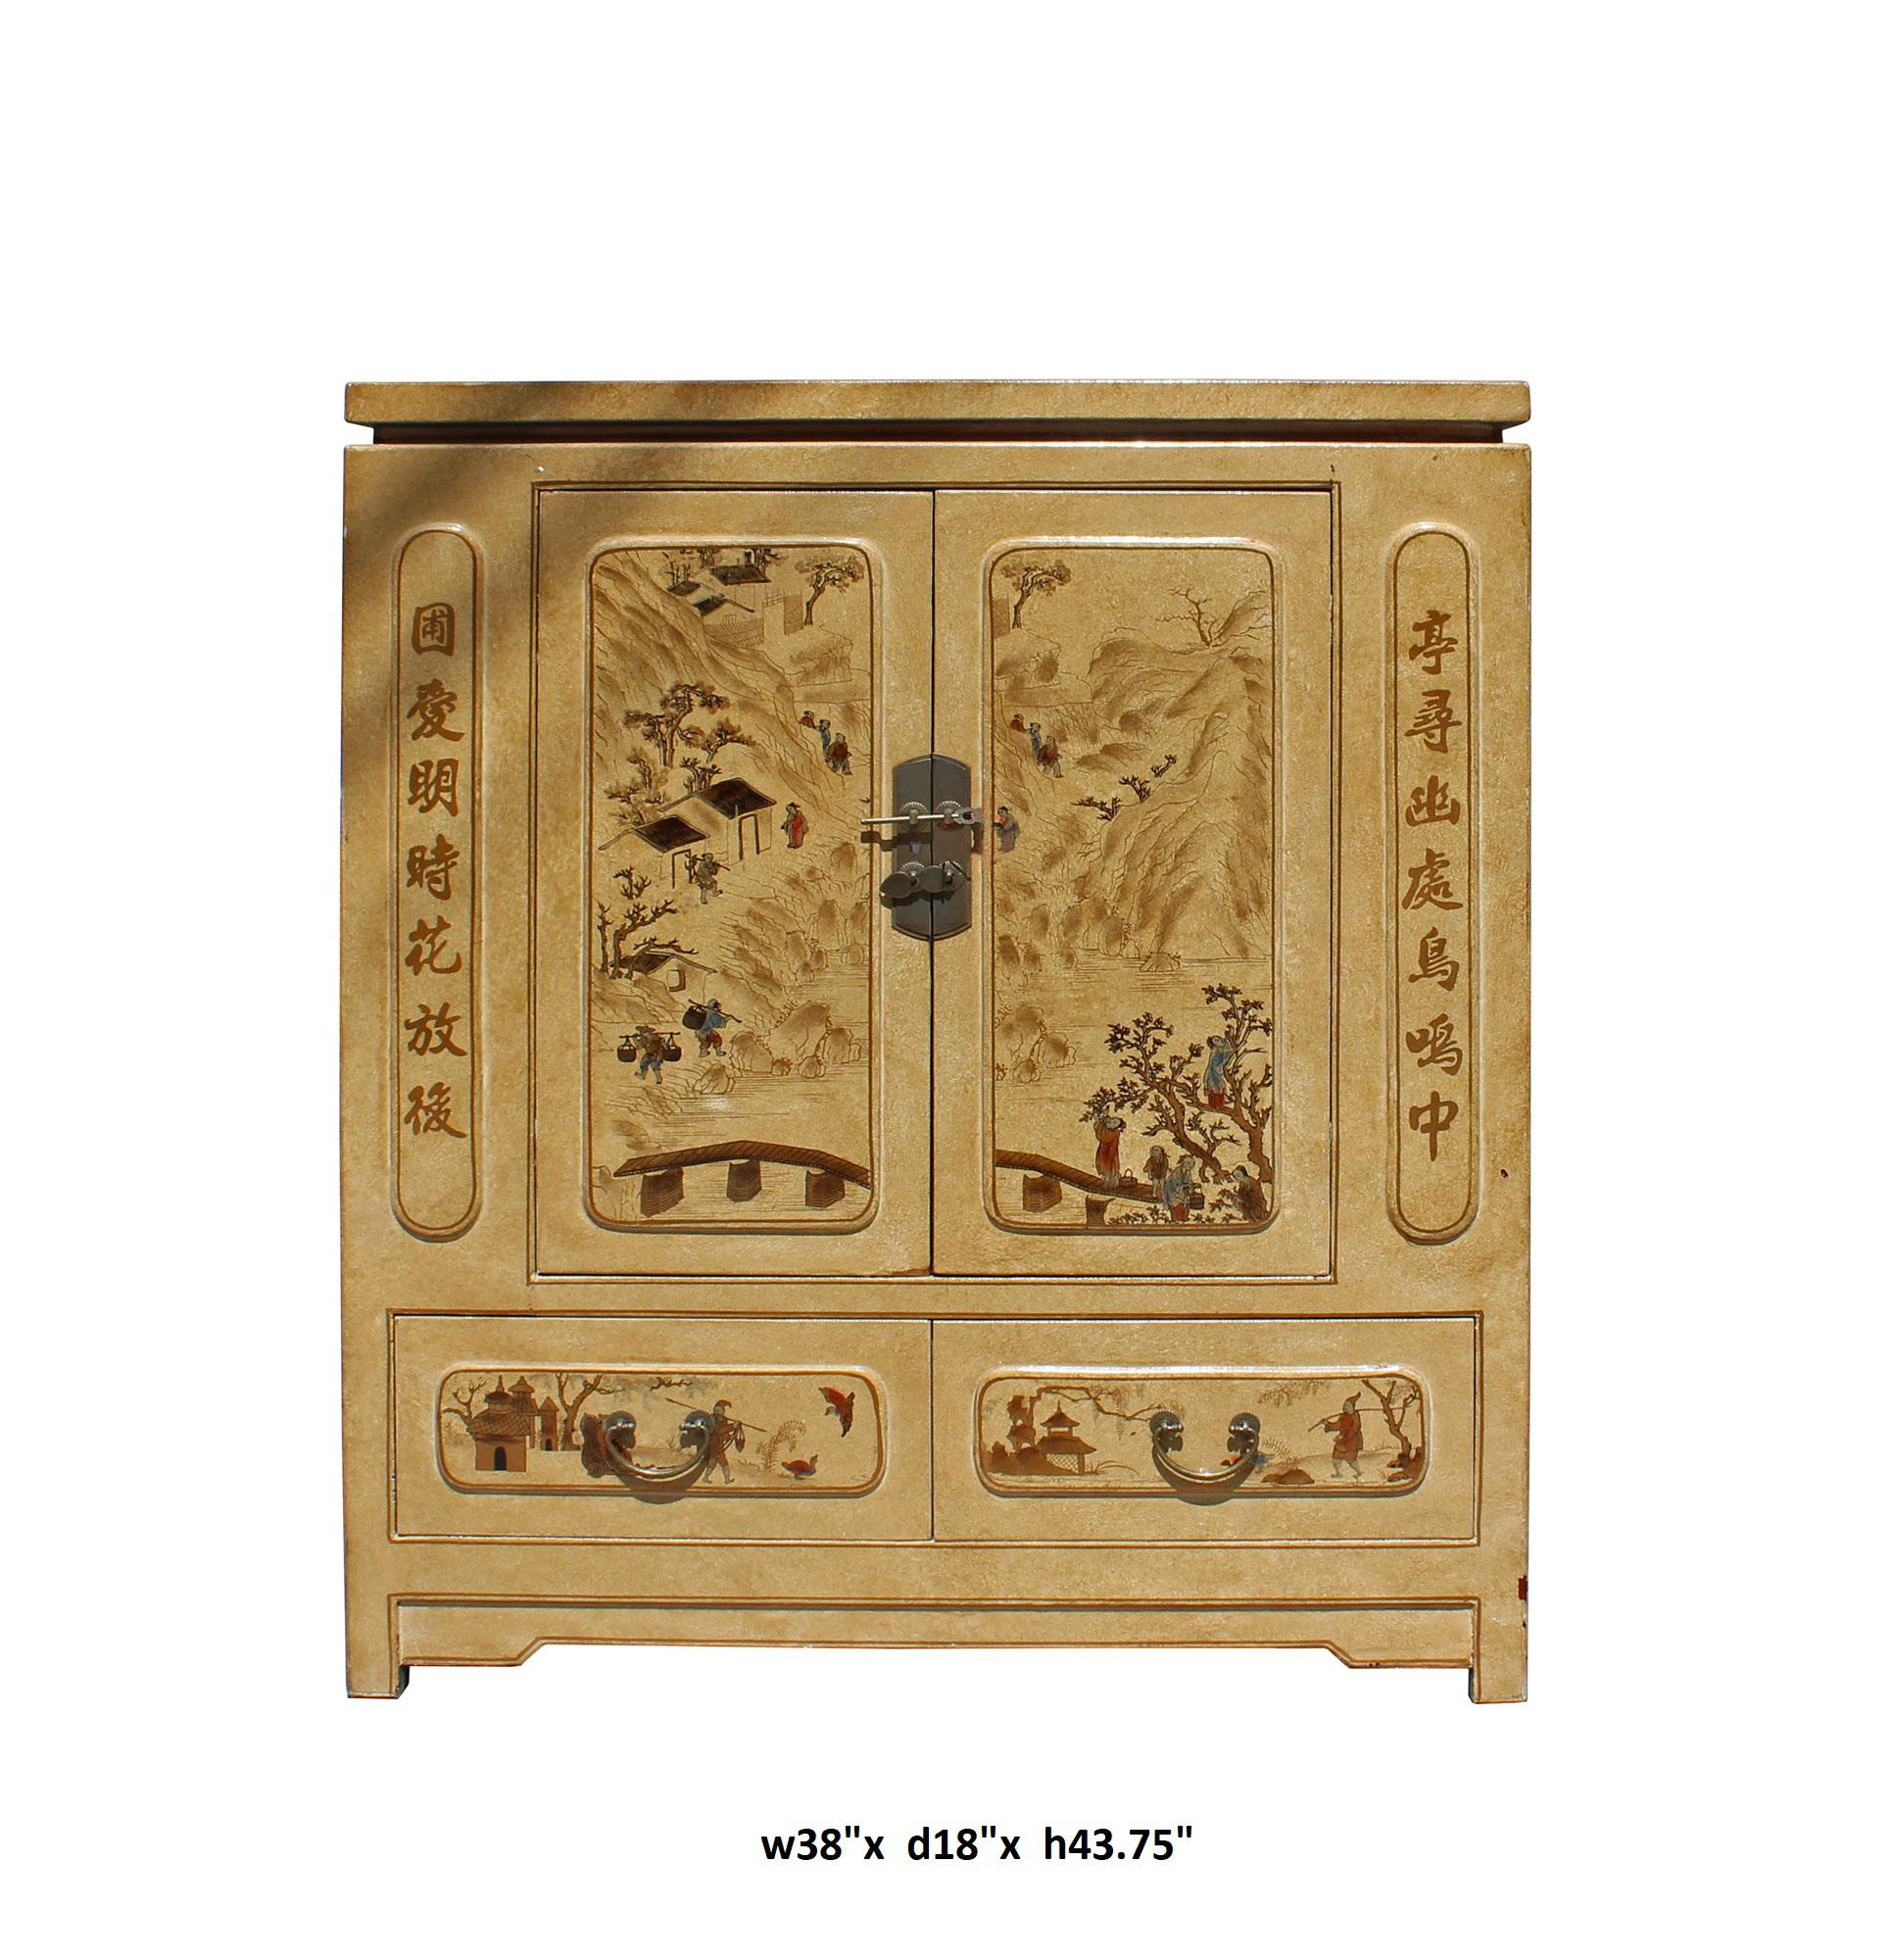 This is a storage cabinet with golden yellow beige color veneer printed oriental scenery graphic covered  sc 1 st  Chairish & Chinese Golden Beige Veneer Print Graphic Side Table Shoes Cabinet ...